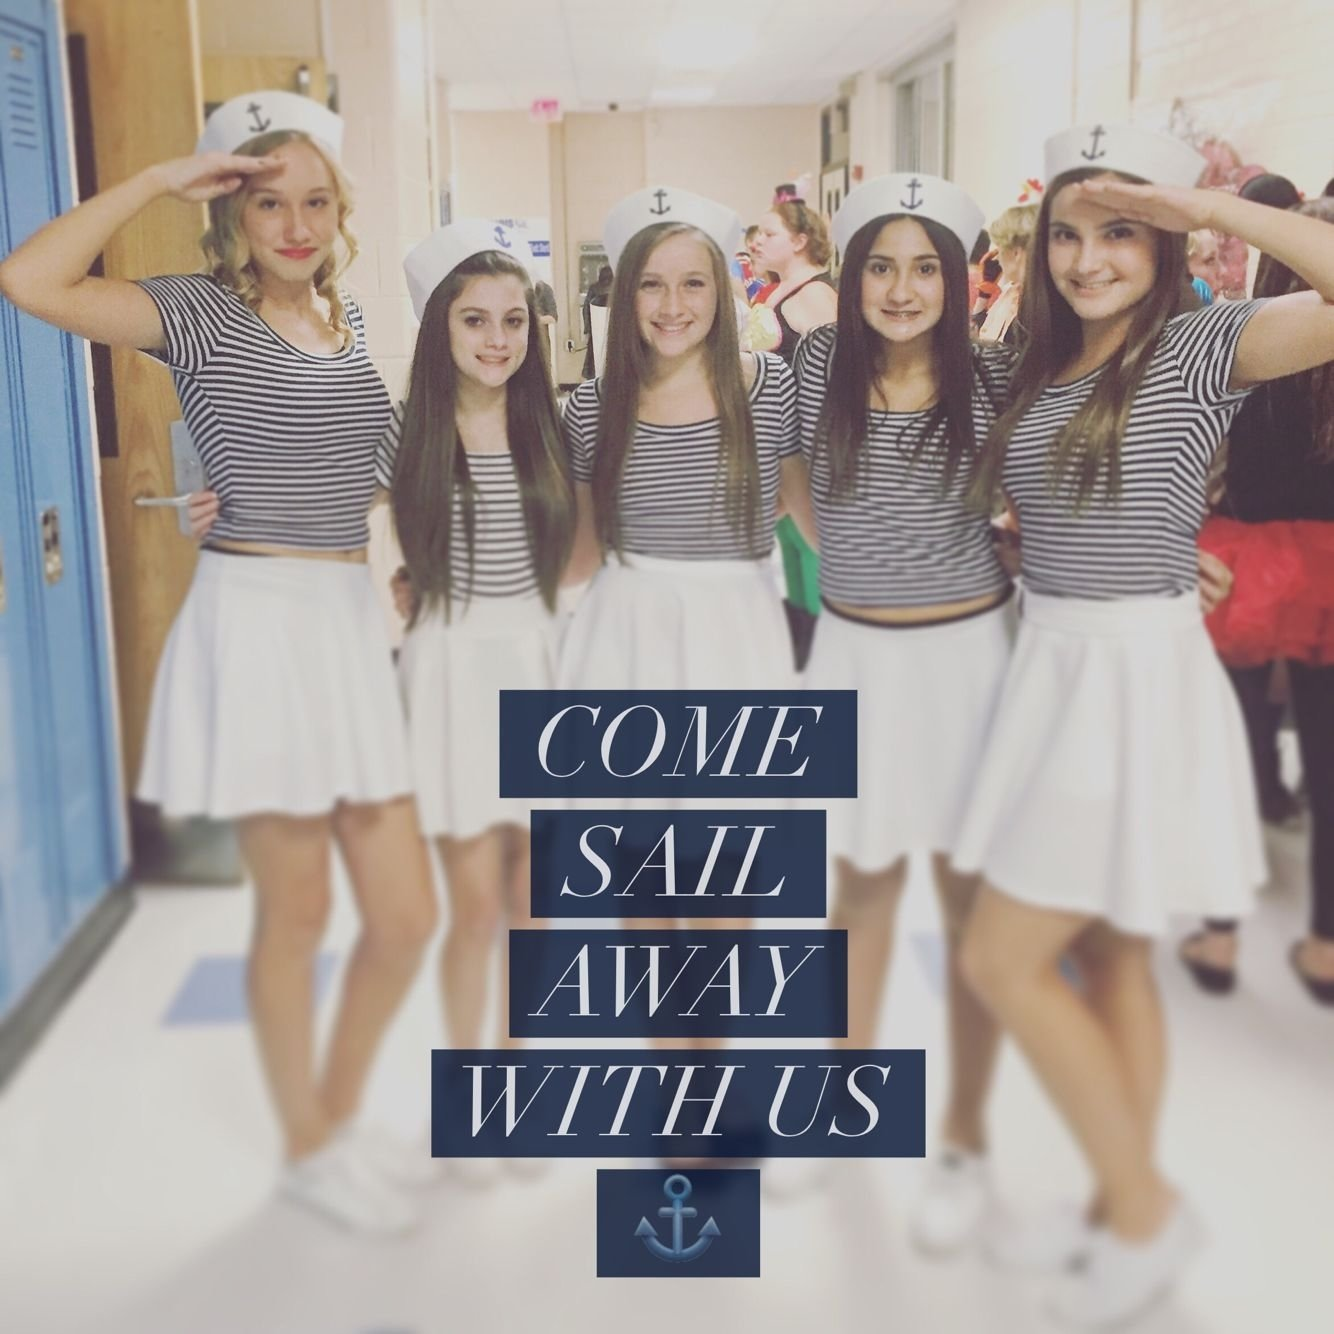 10 Ideal Homemade Costume Ideas For Teenagers easy sailor costumes for teen girls diy teen halloween costume 2020